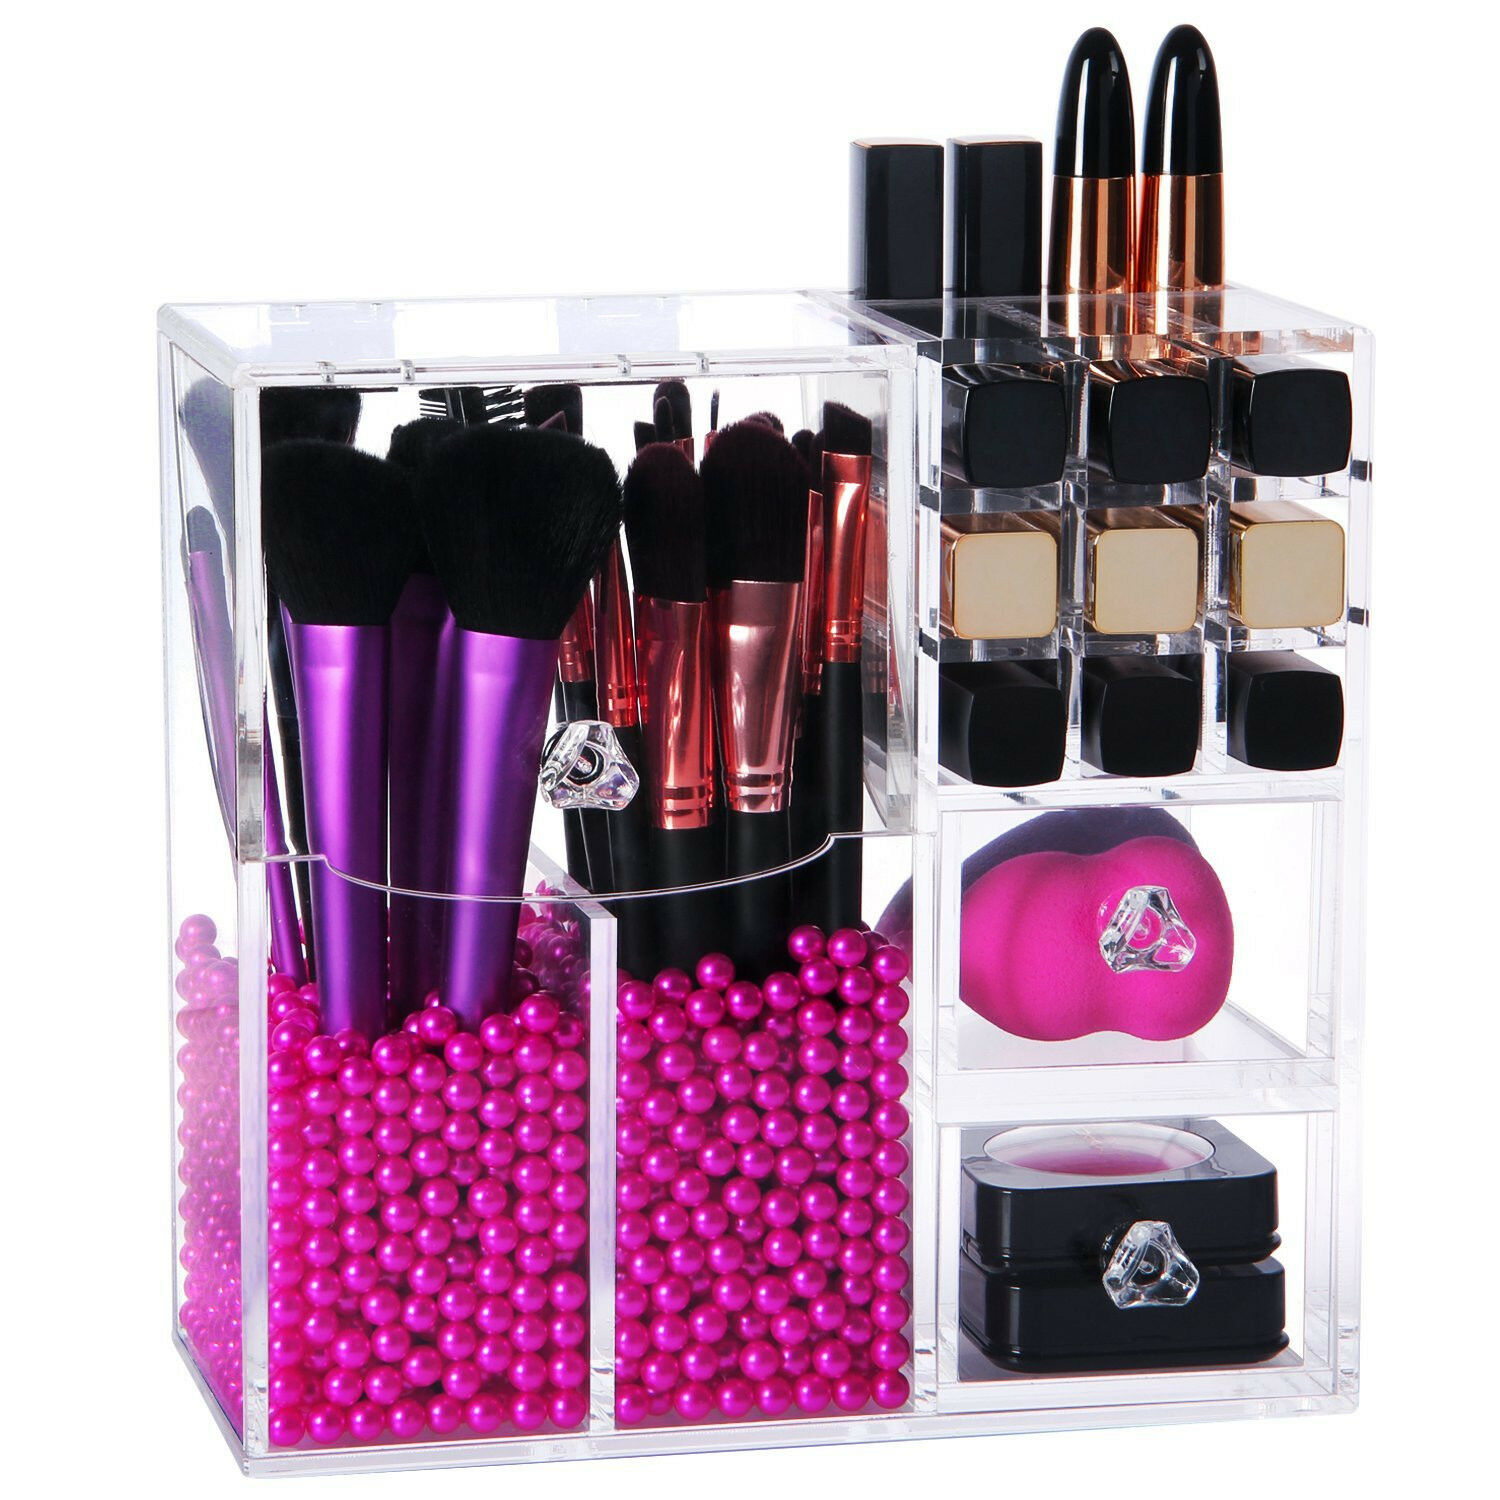 lifewit pinsel aufbewahrung mit lippenstift organizer. Black Bedroom Furniture Sets. Home Design Ideas